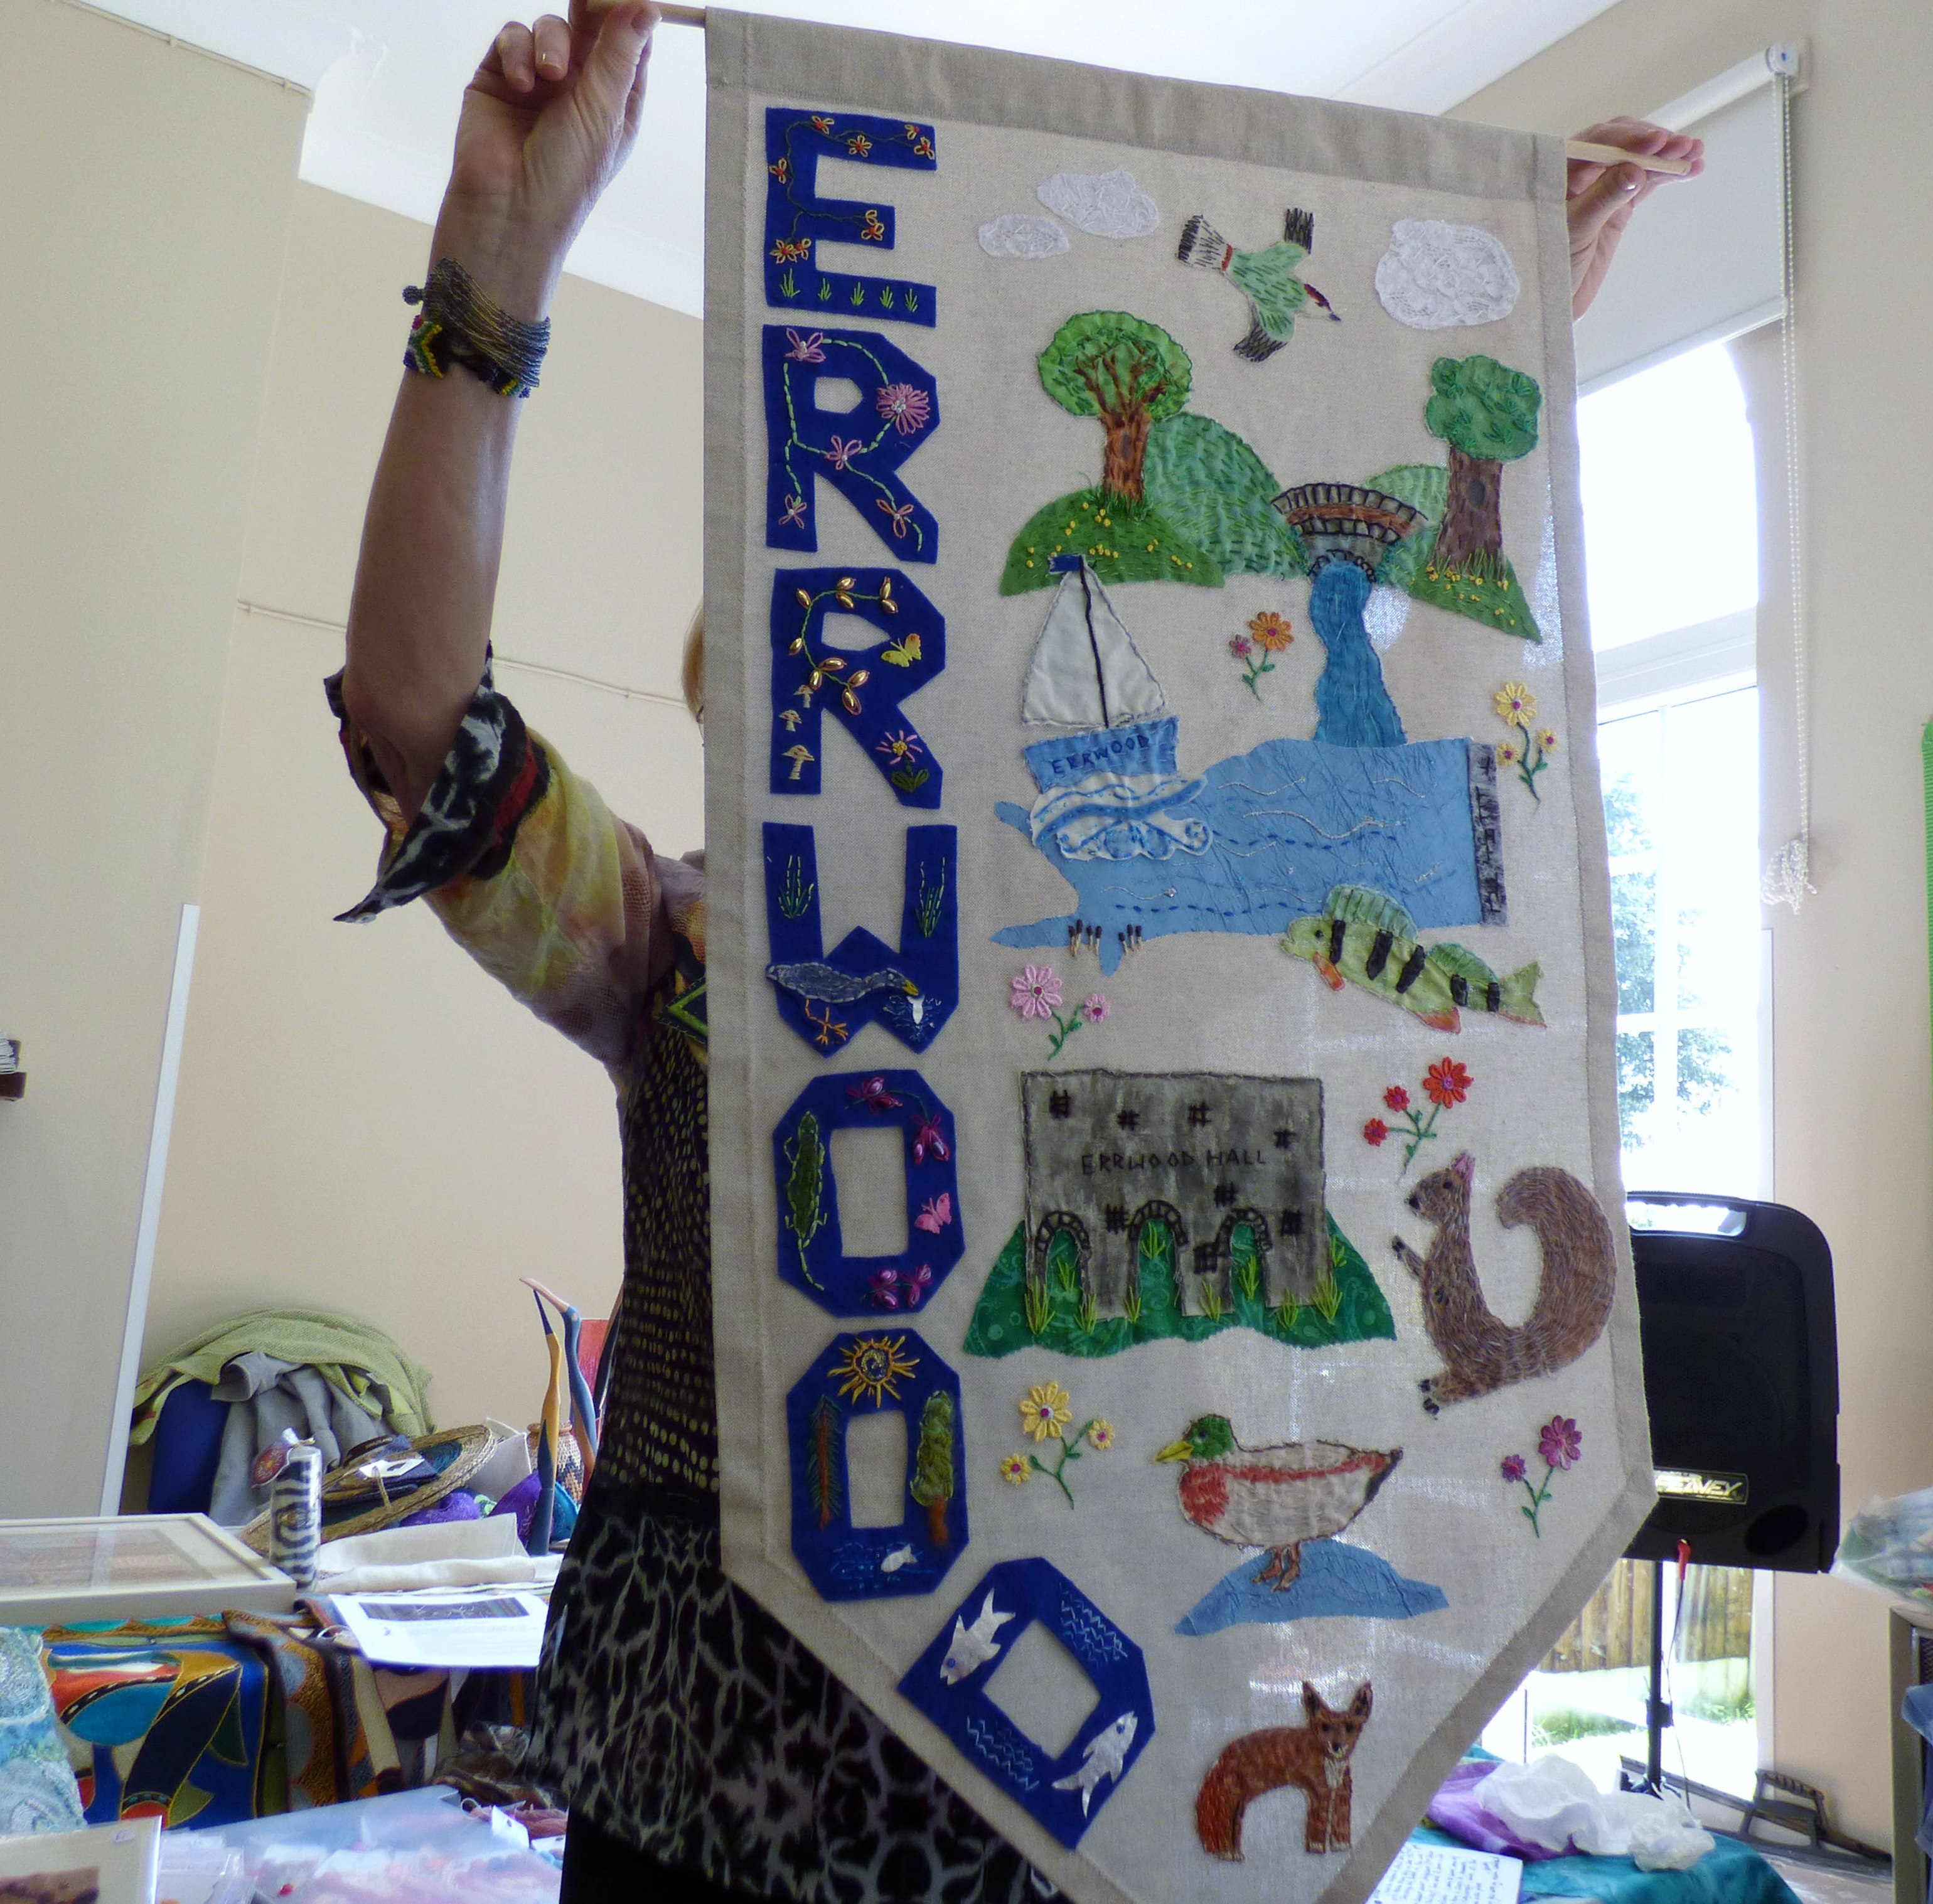 hanging made by children from Kettleshulme C of E school, Derbyshire